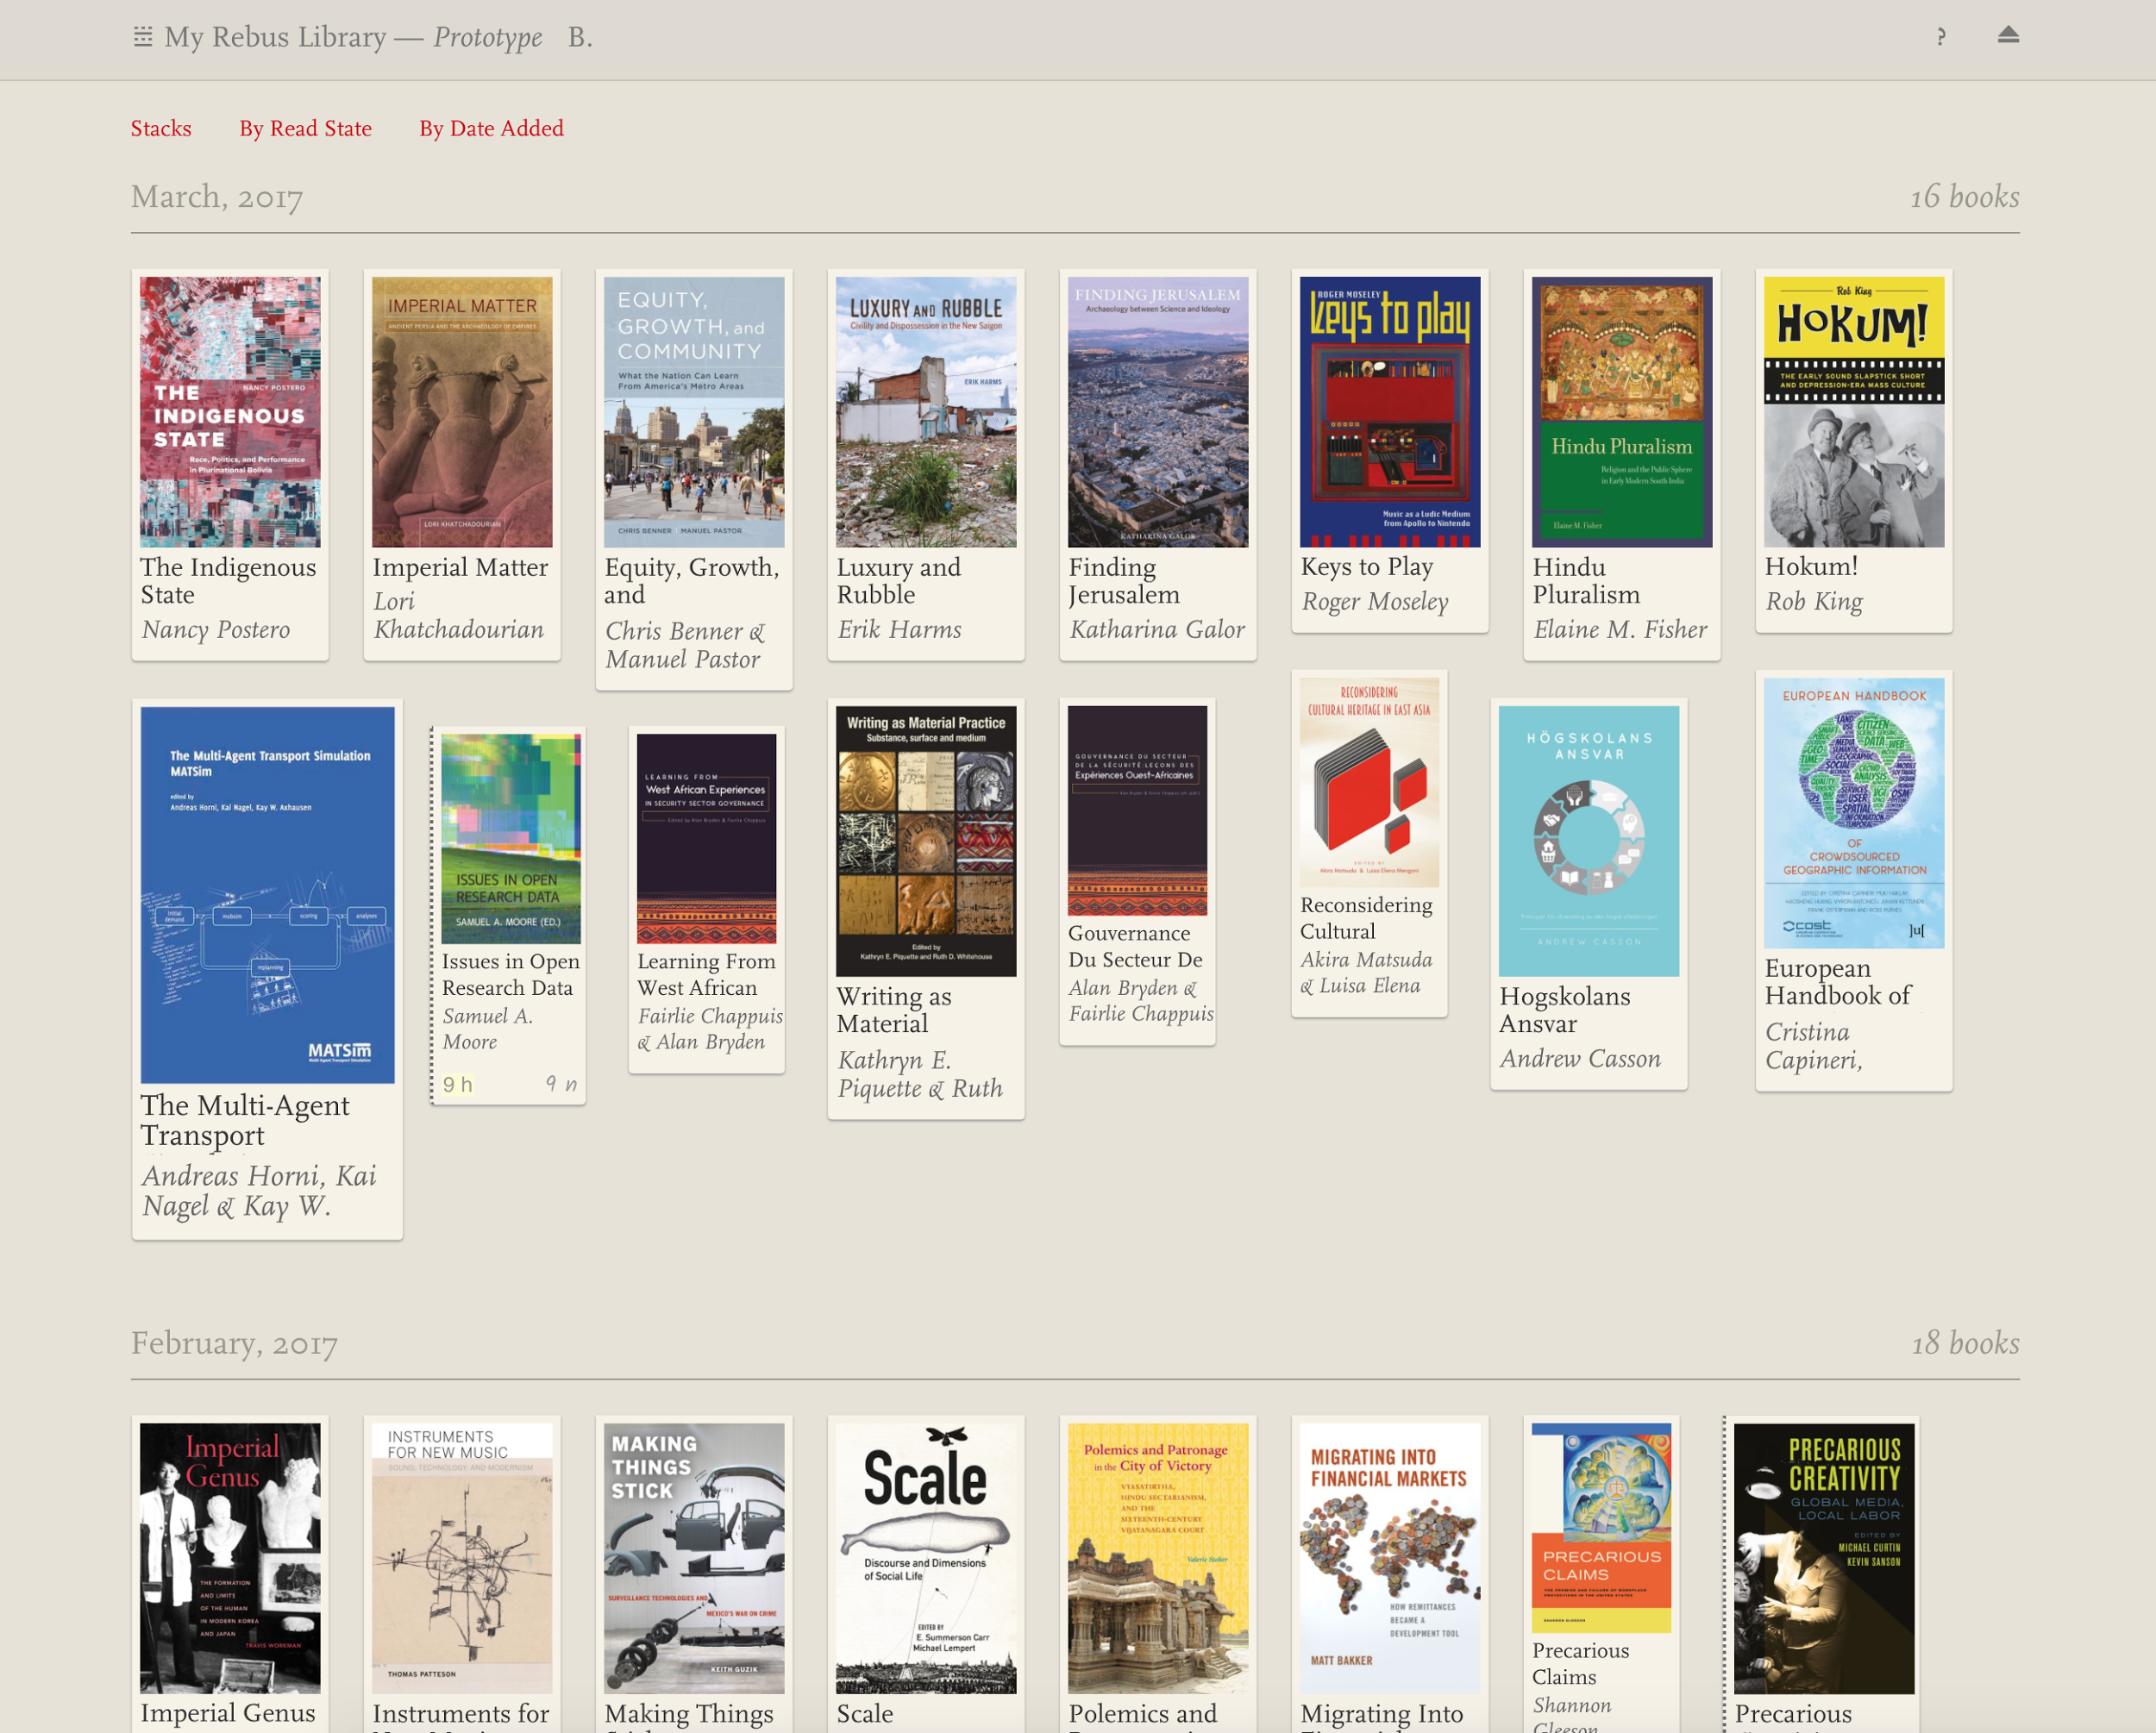 This image shows the Library Overview view showing the books in a users collection. Items are displayed as book cover thumbnails, sorted by date added. The collection can also be sorted by read state or by stacks.